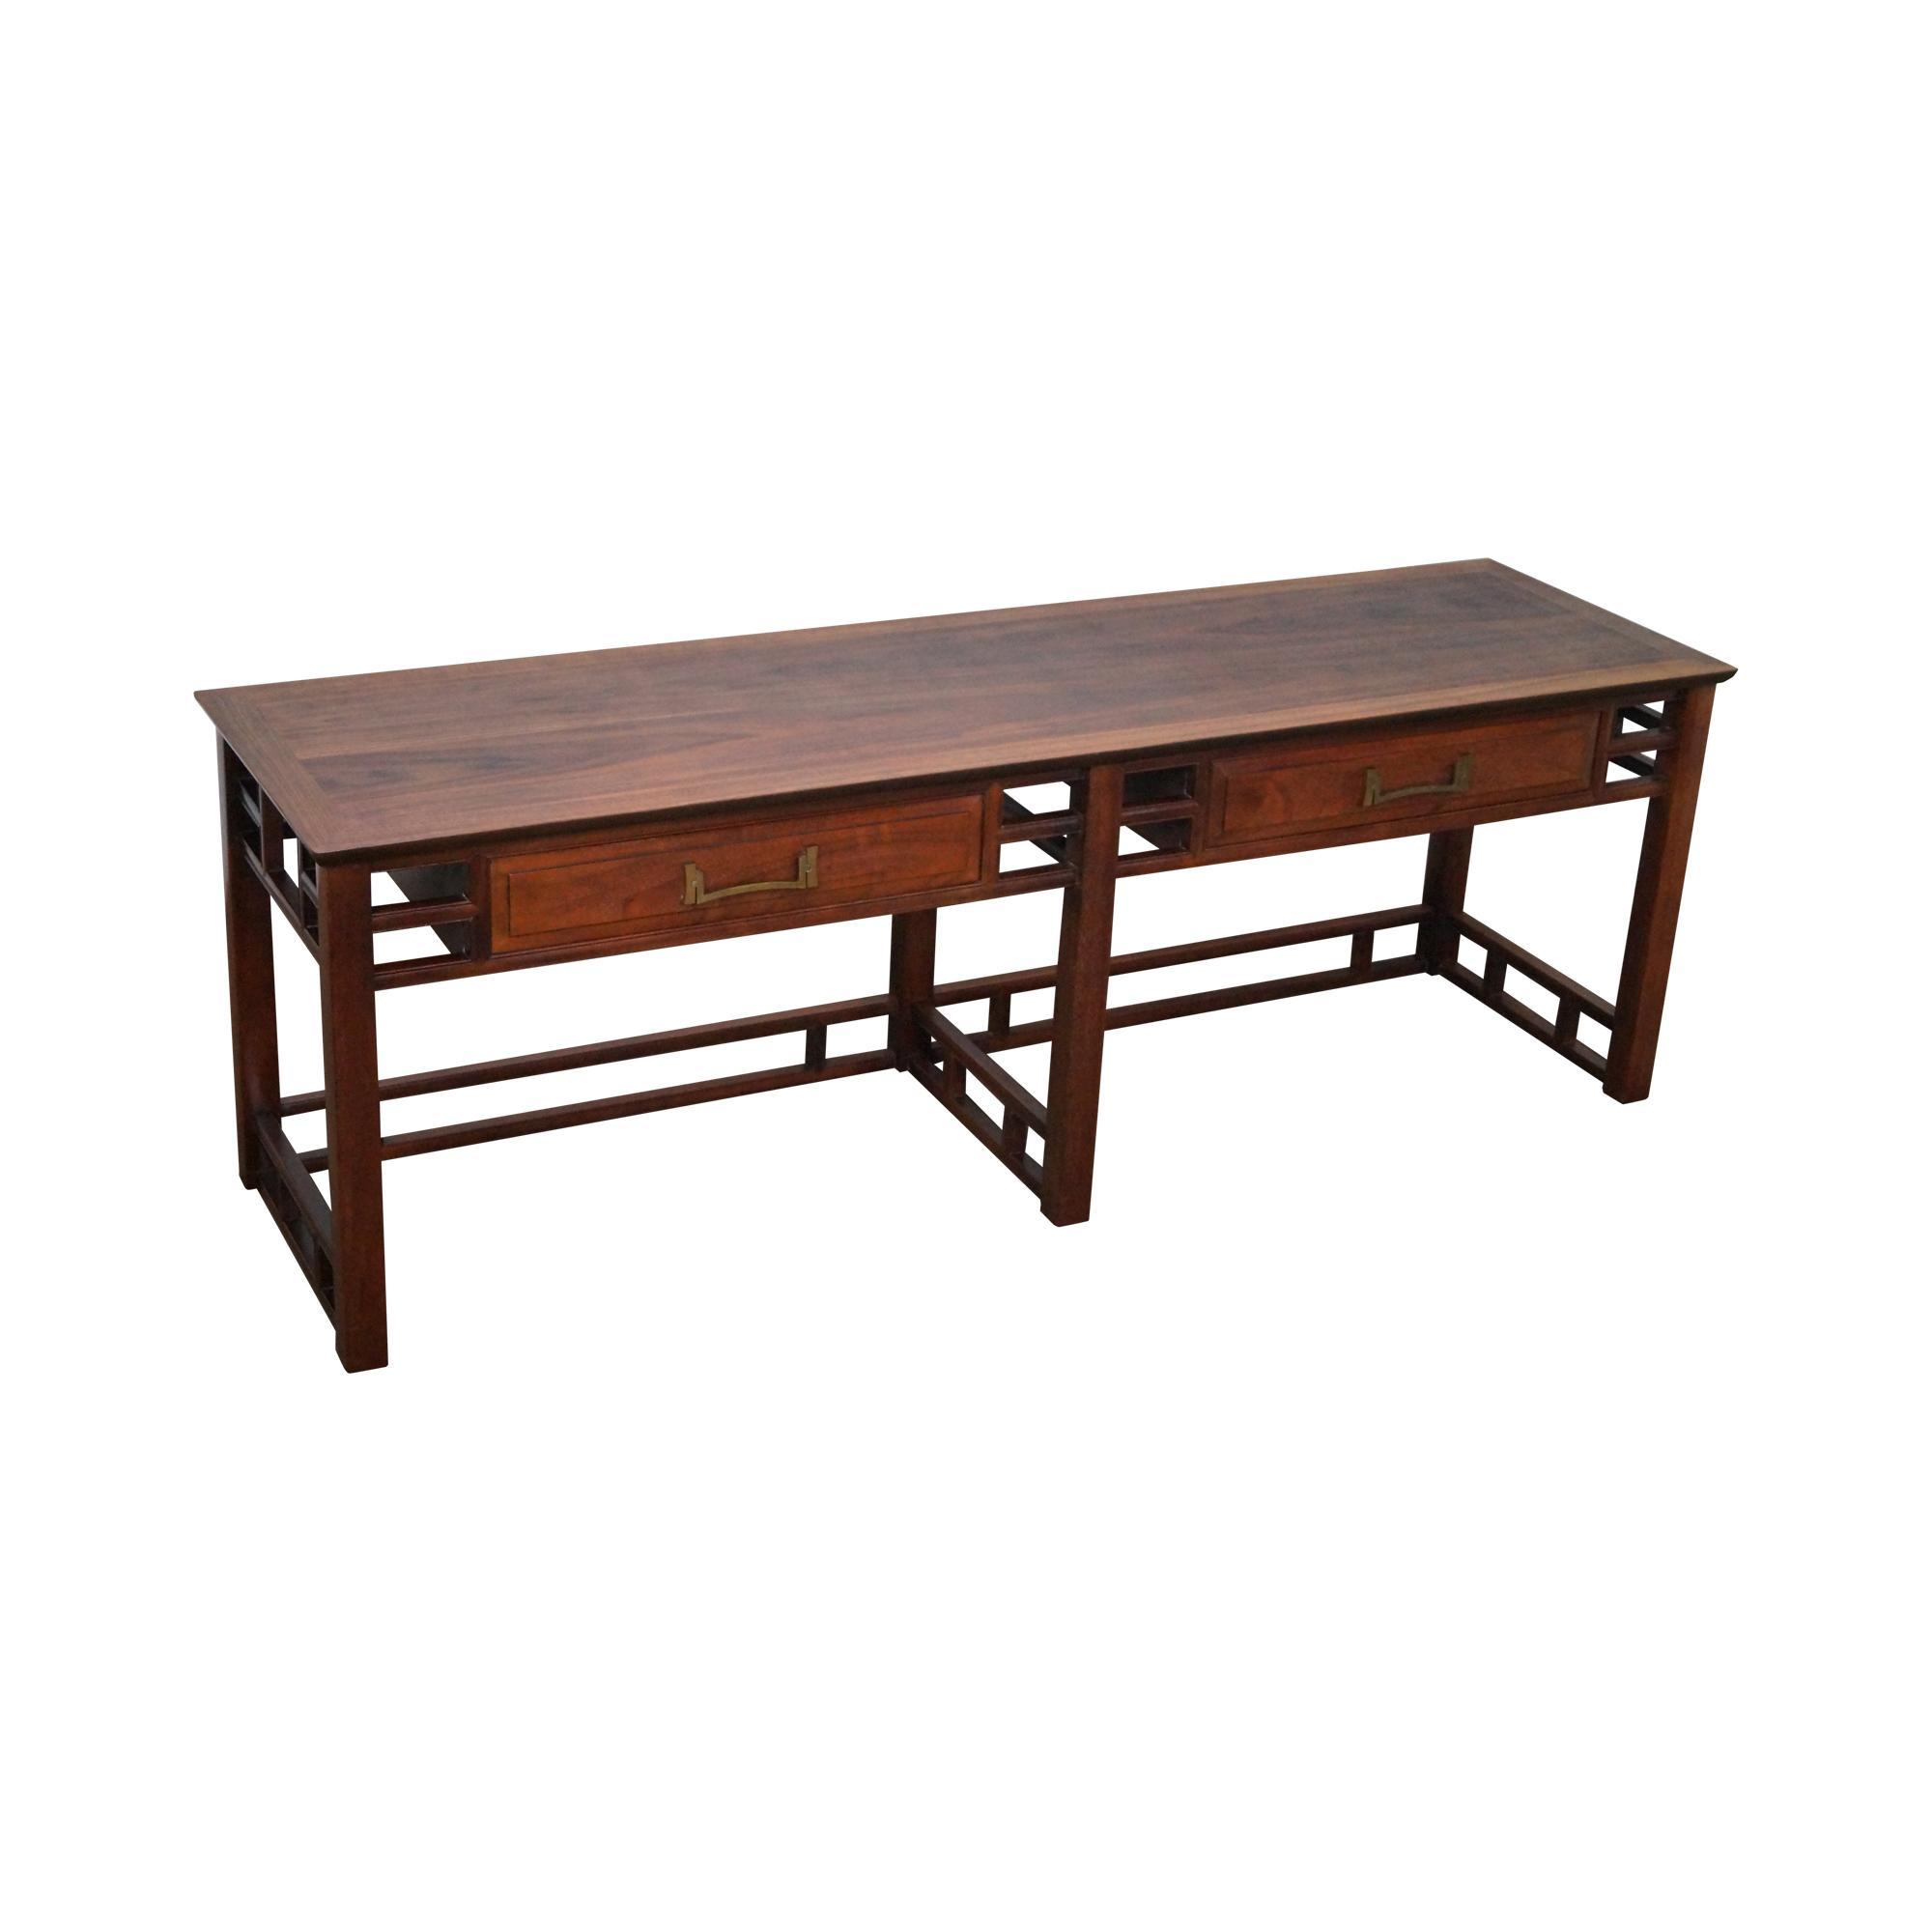 heritage henredon mid century teak low console table from bucks  - roll over large image to magnify click large image to zoom